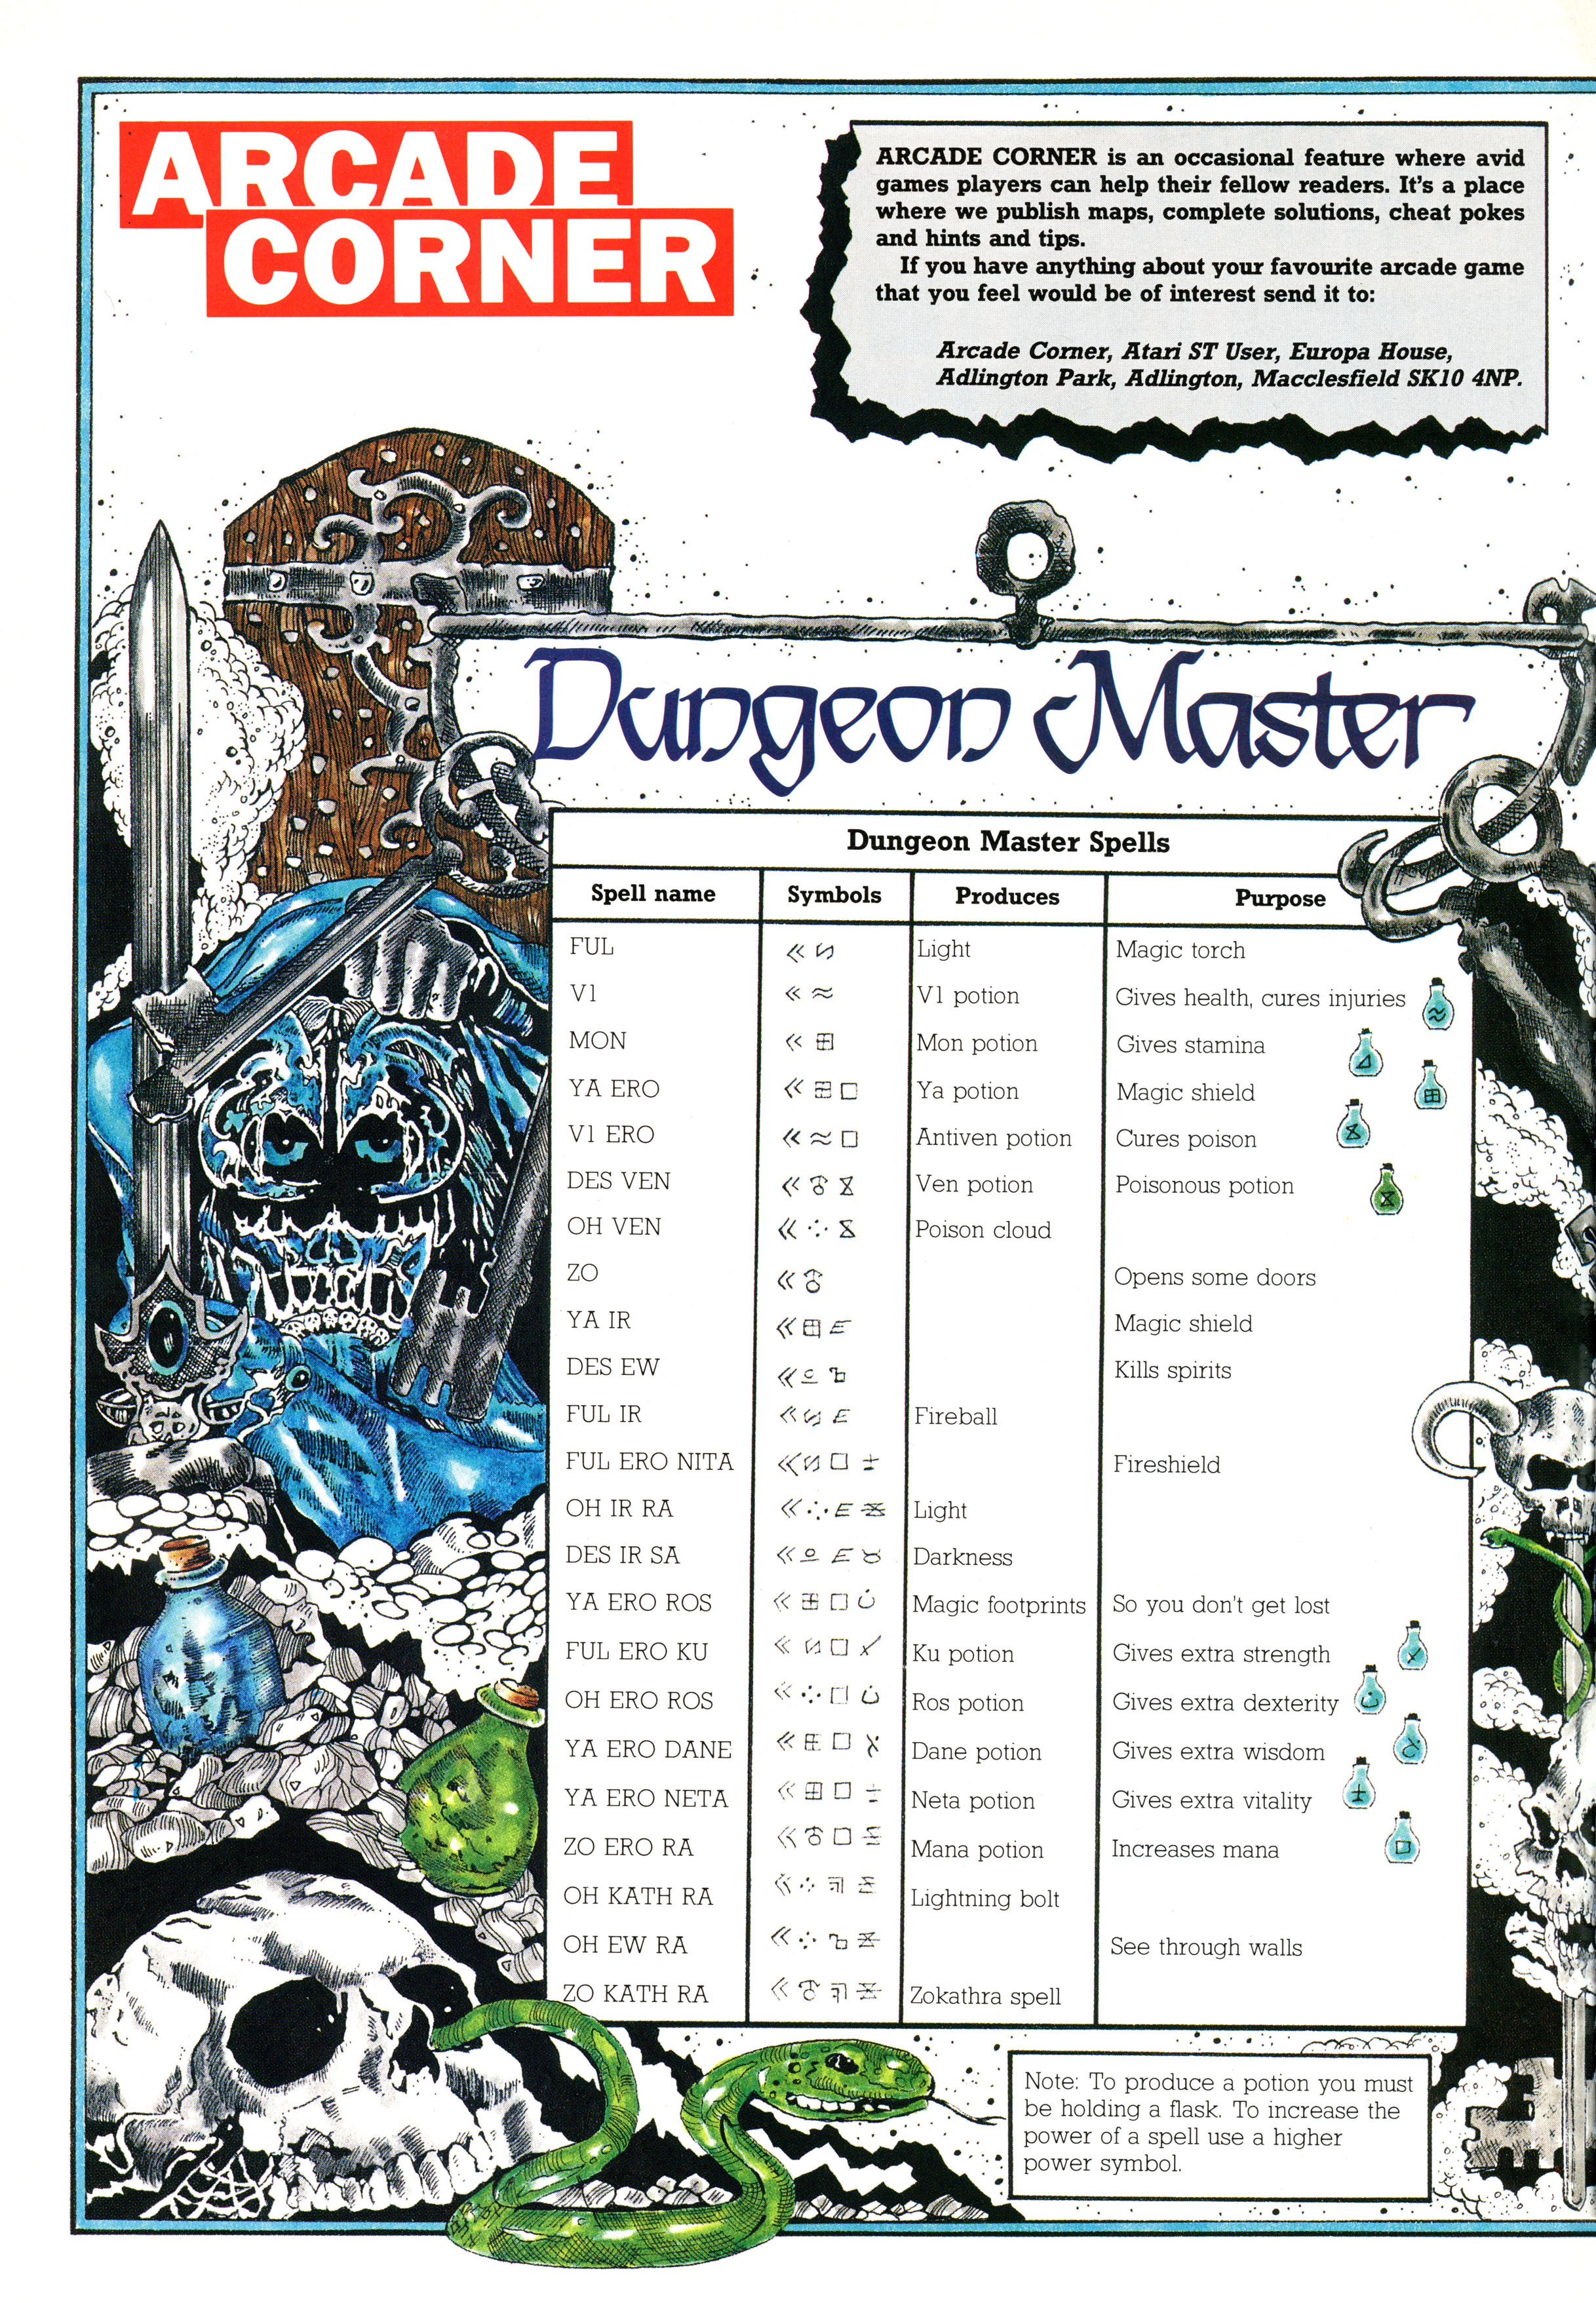 Dungeon Master Hints published in British magazine 'Atari ST User', Vol 3 No 11 January 1989, Page 112